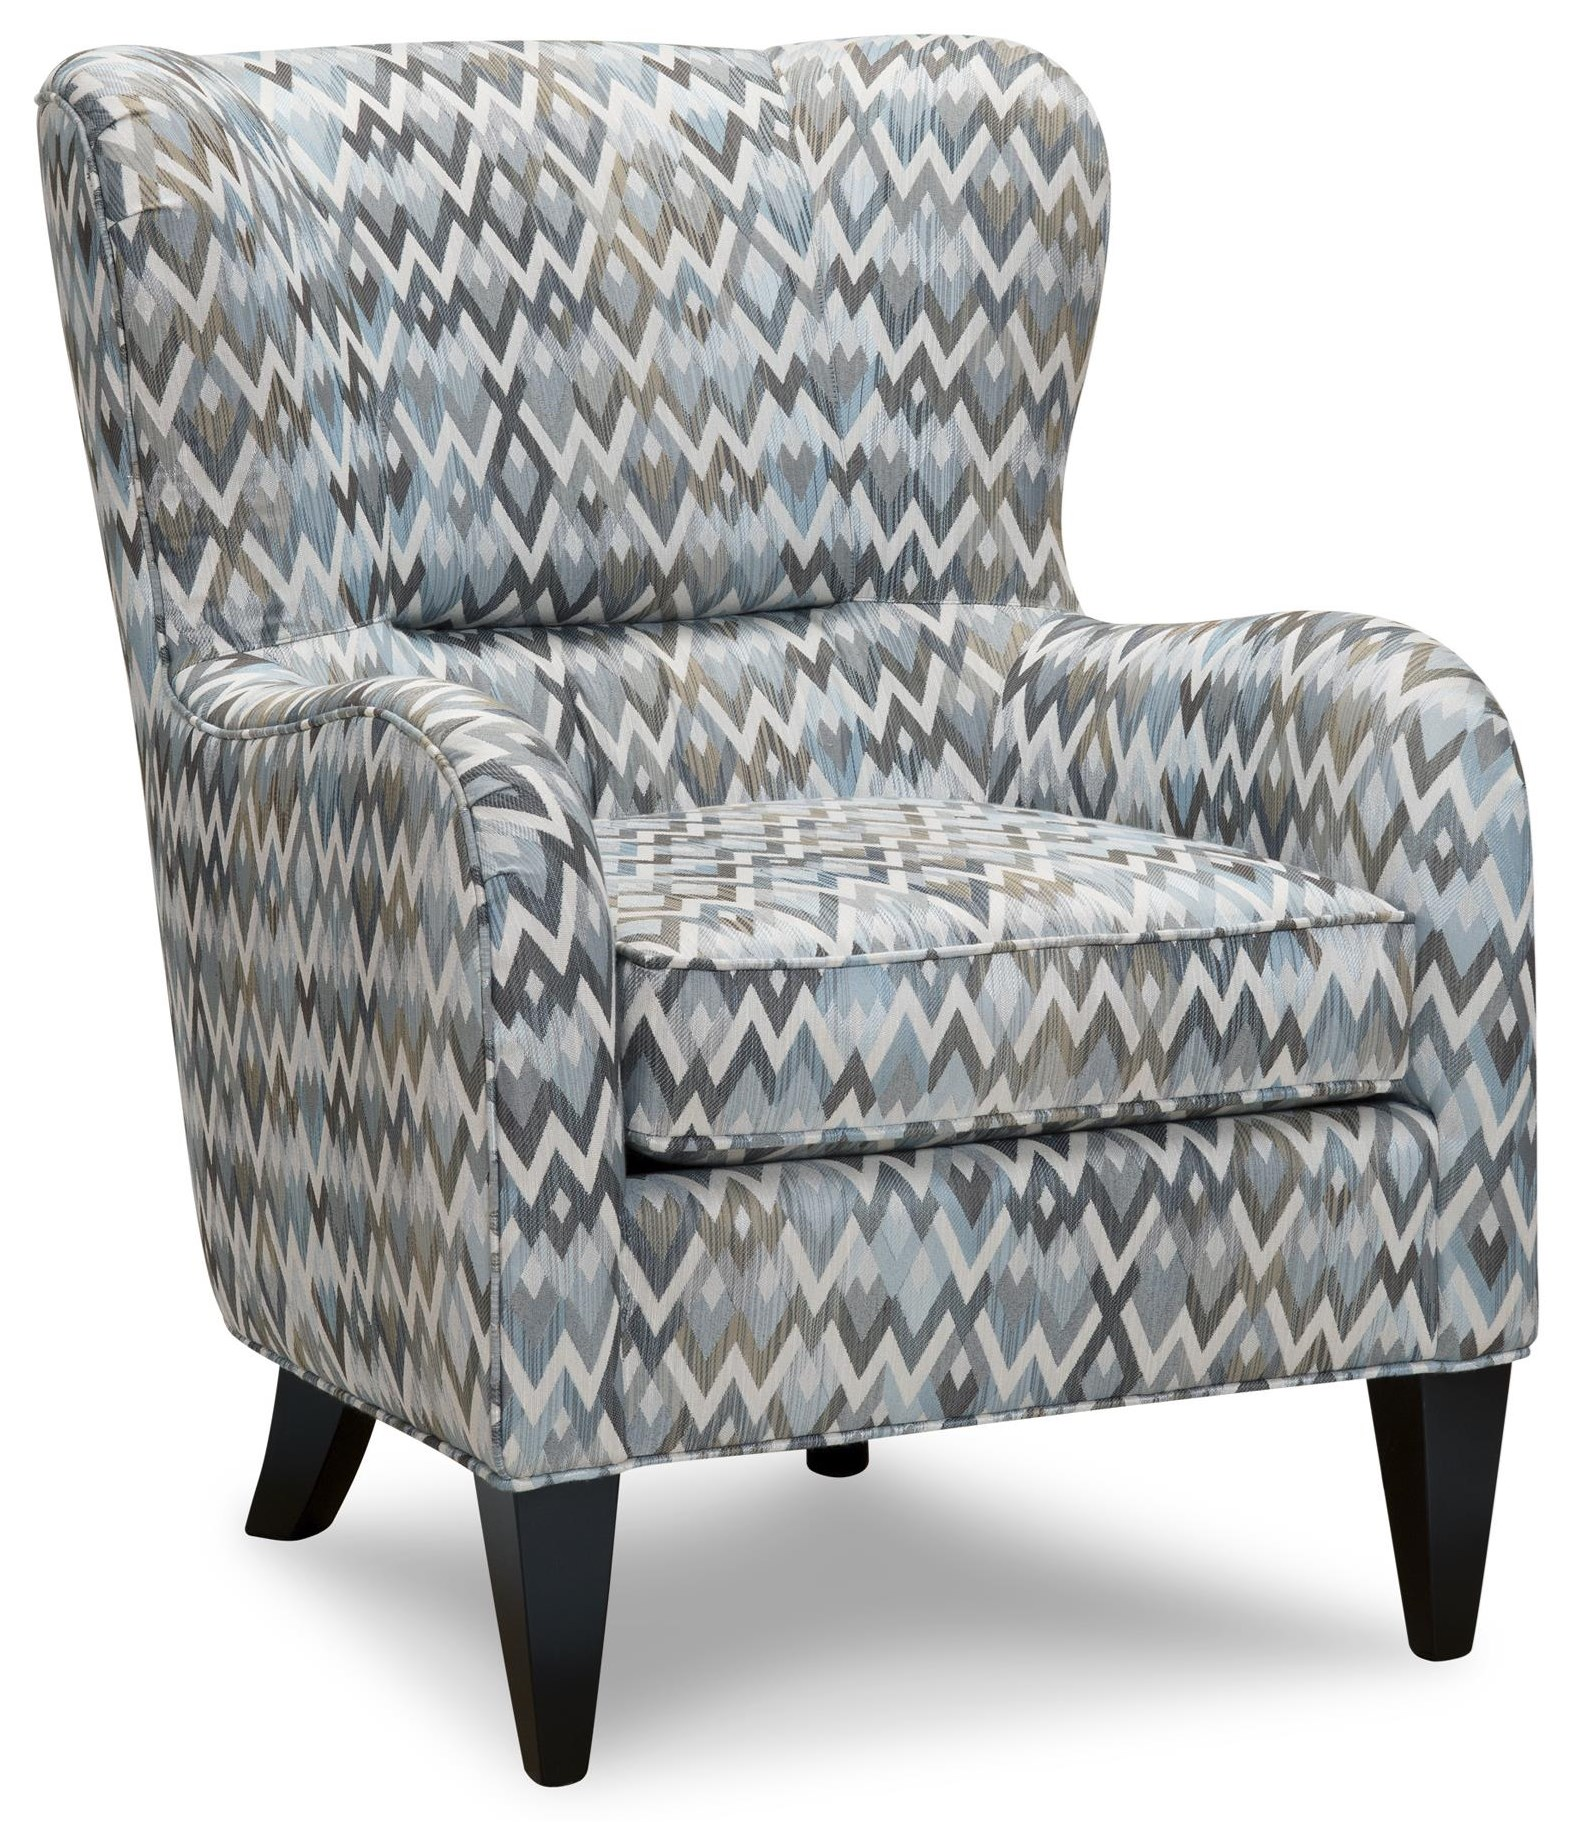 34 Occasional Chair by Southside Designs at Bennett's Furniture and Mattresses